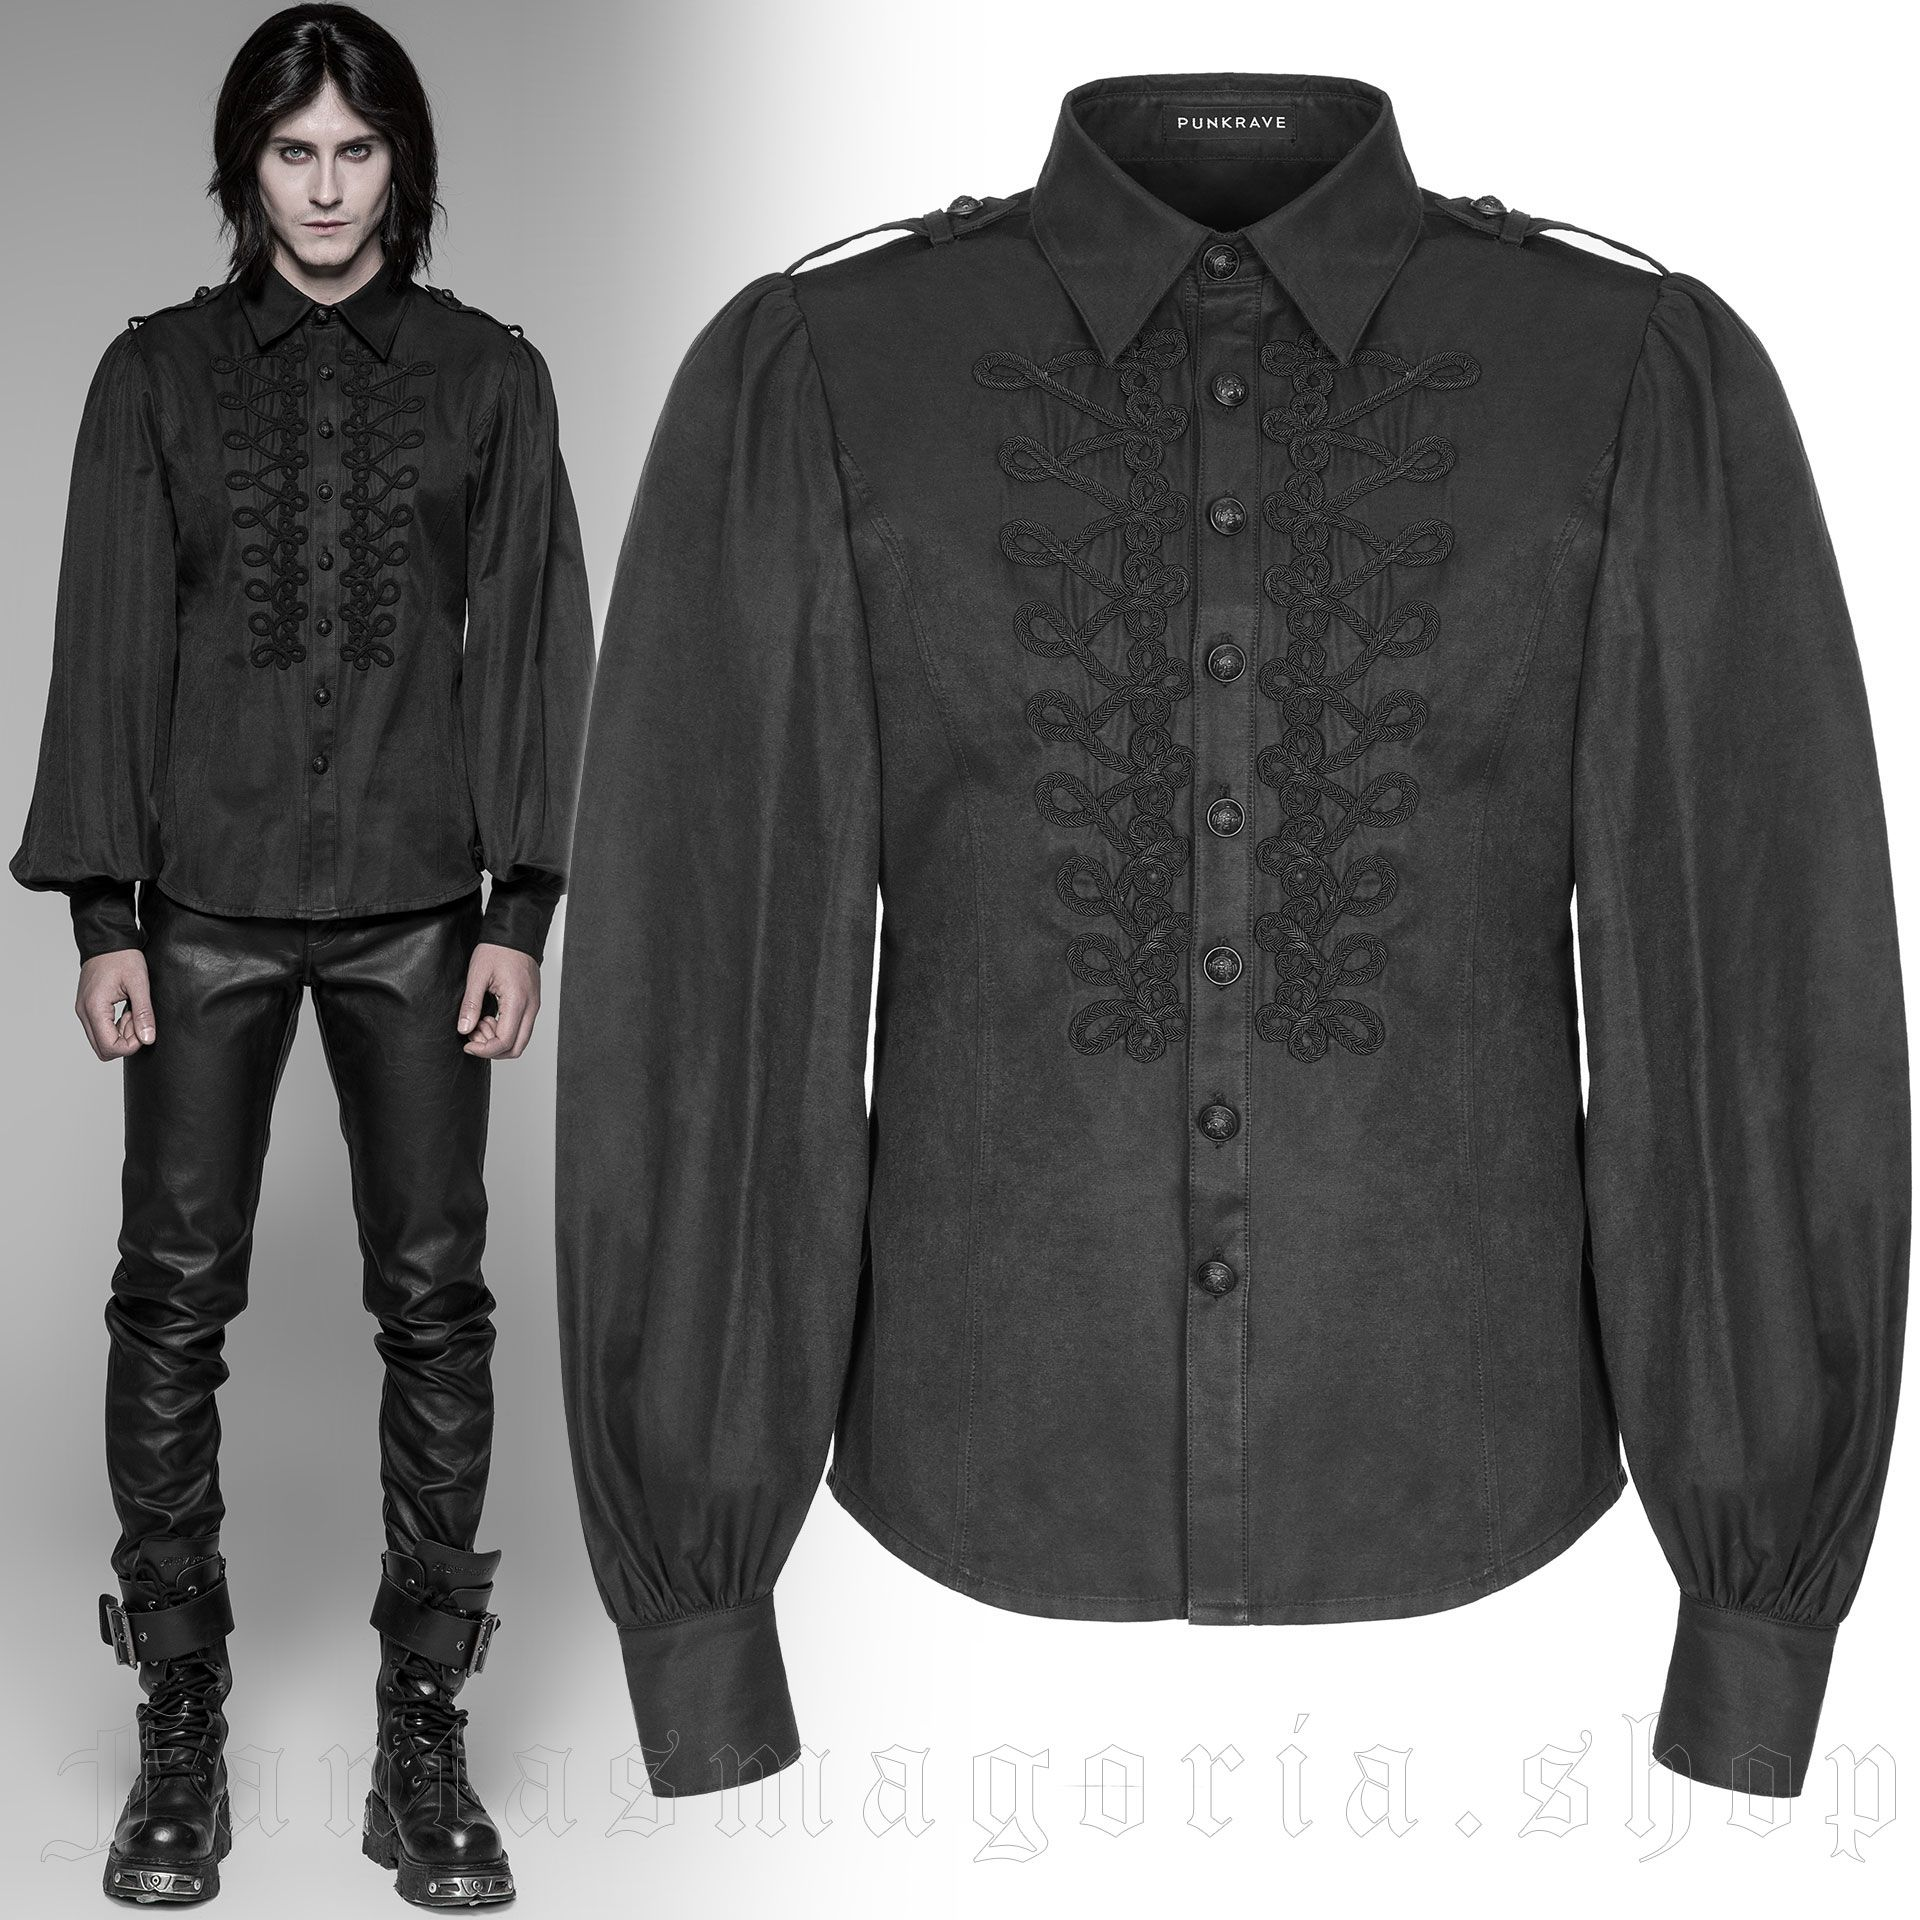 men's Ghostwood Shirt by PUNK RAVE brand, code: WY-914